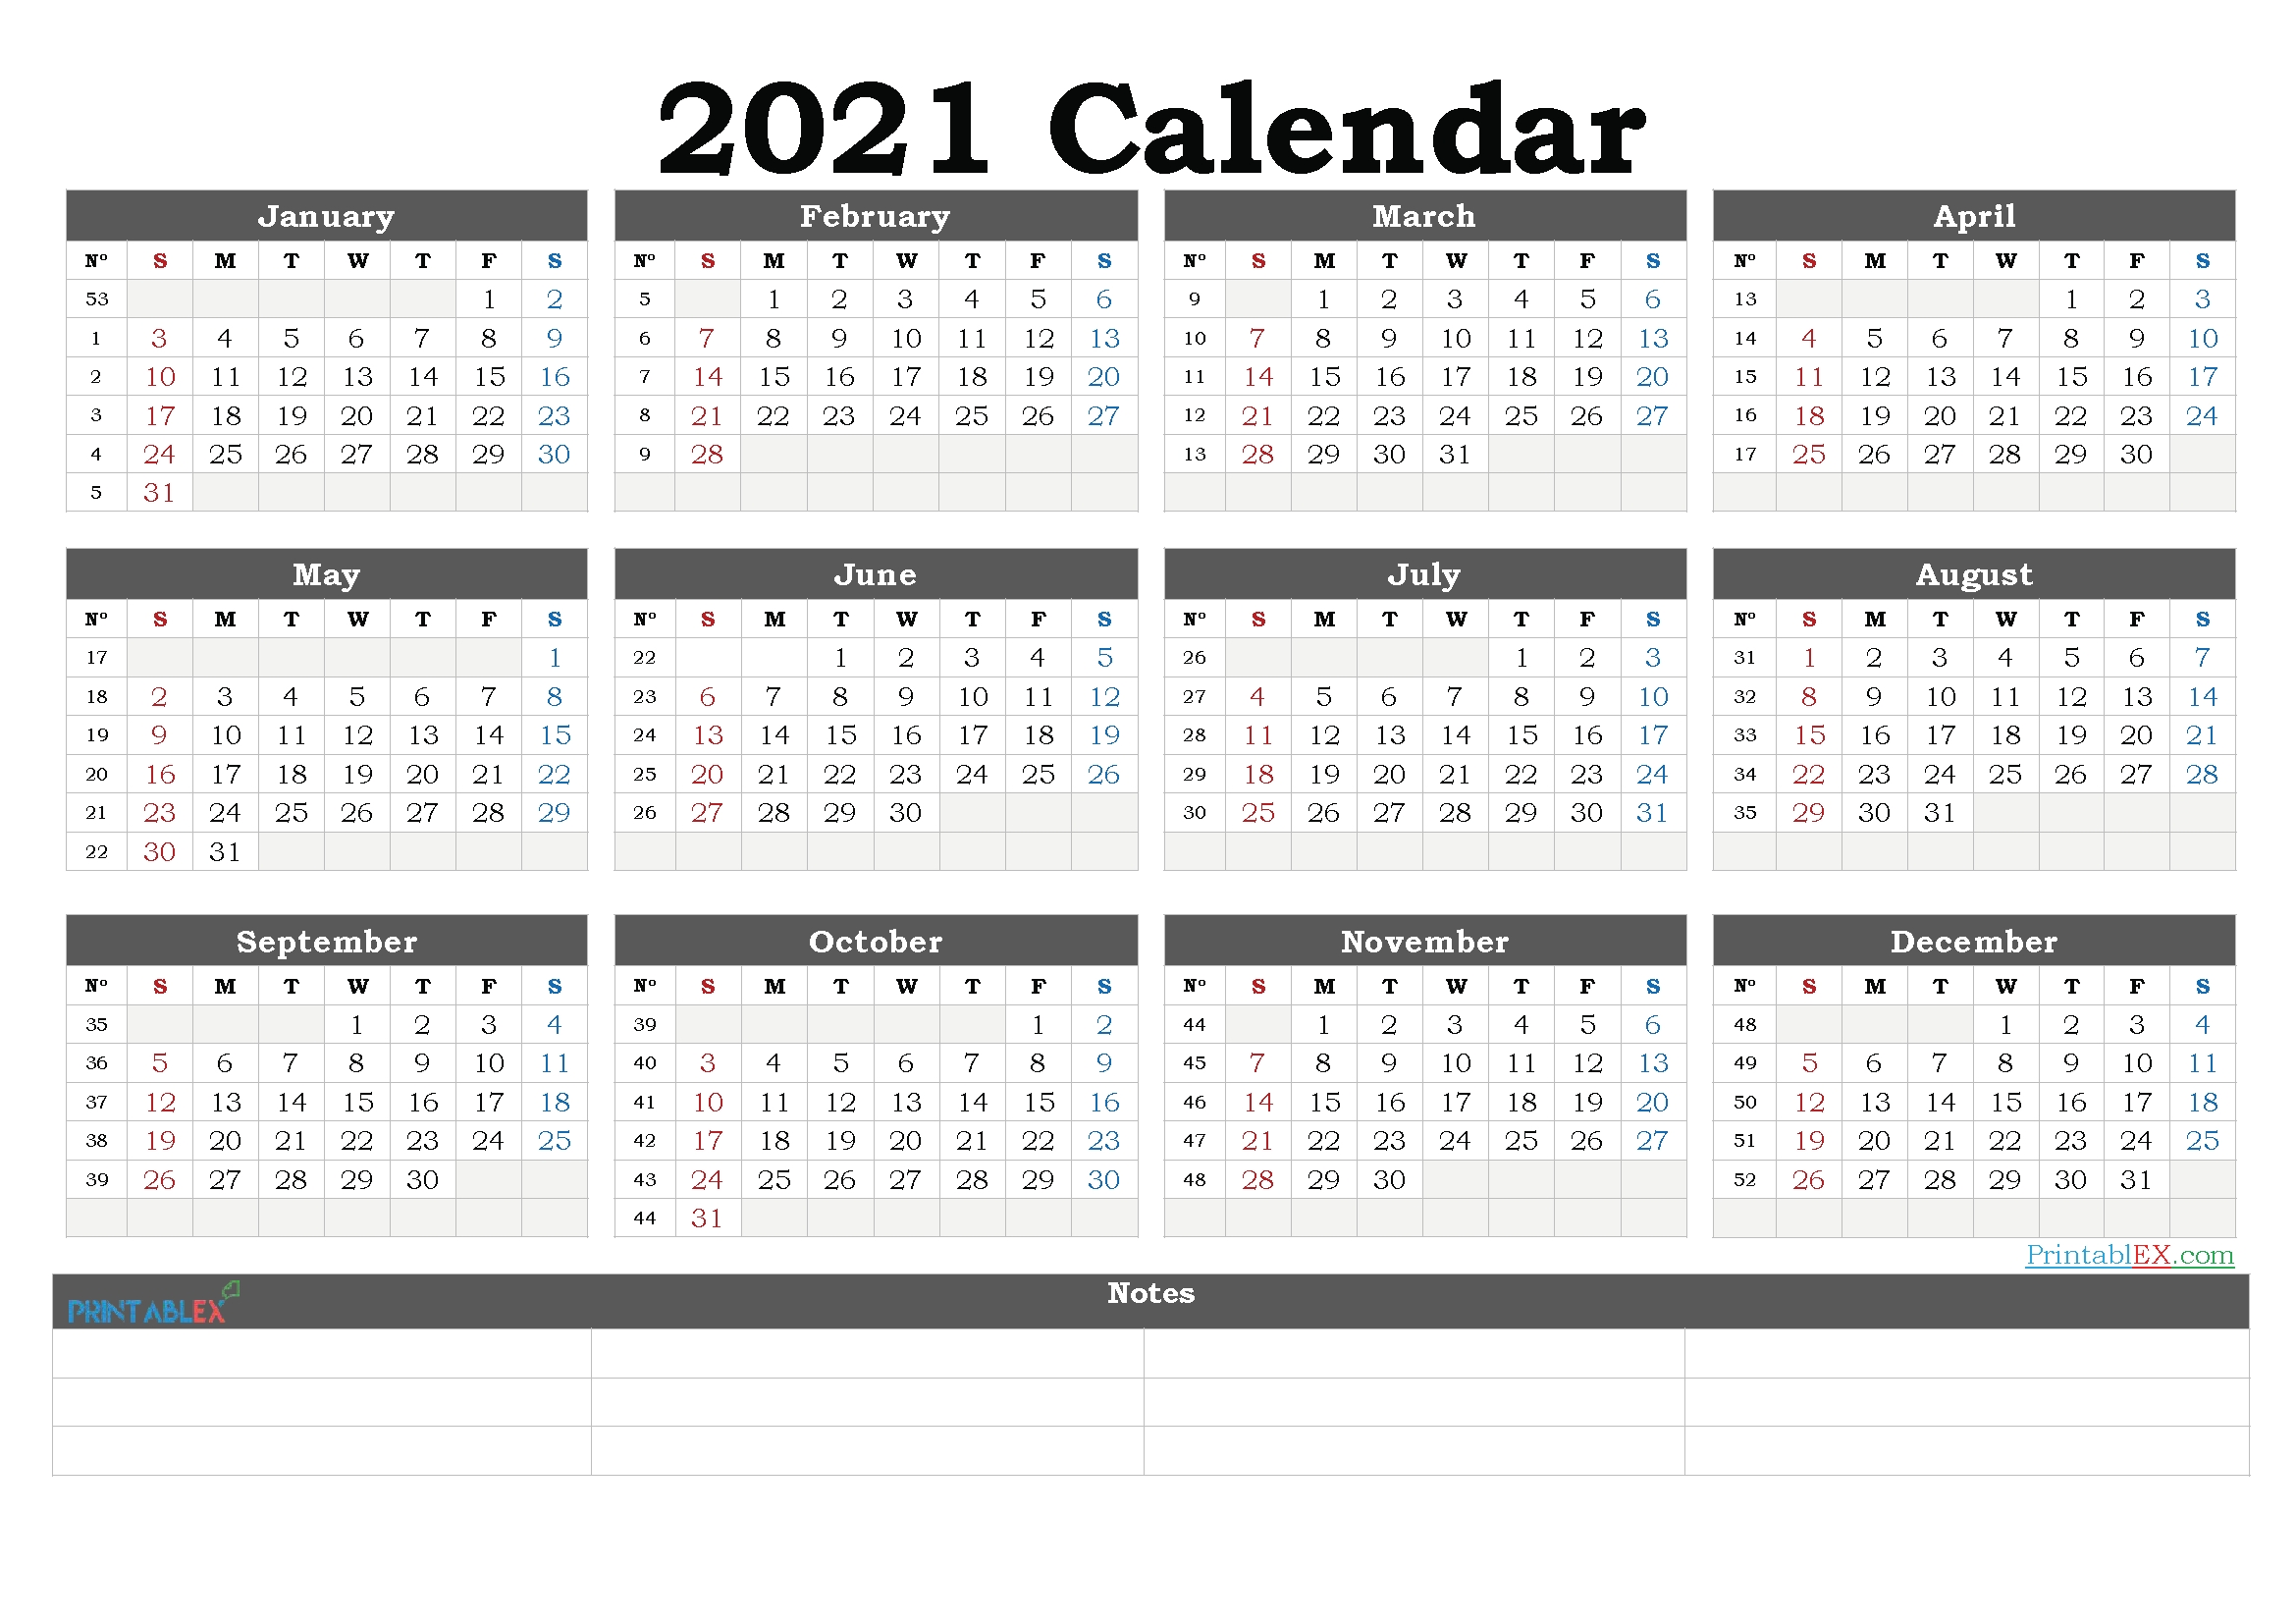 Free Downloadable 2021 Word Calendar - Free 2021 Calendars That You Can Download, Customize, And for Google 2021 Calendar Printable Image